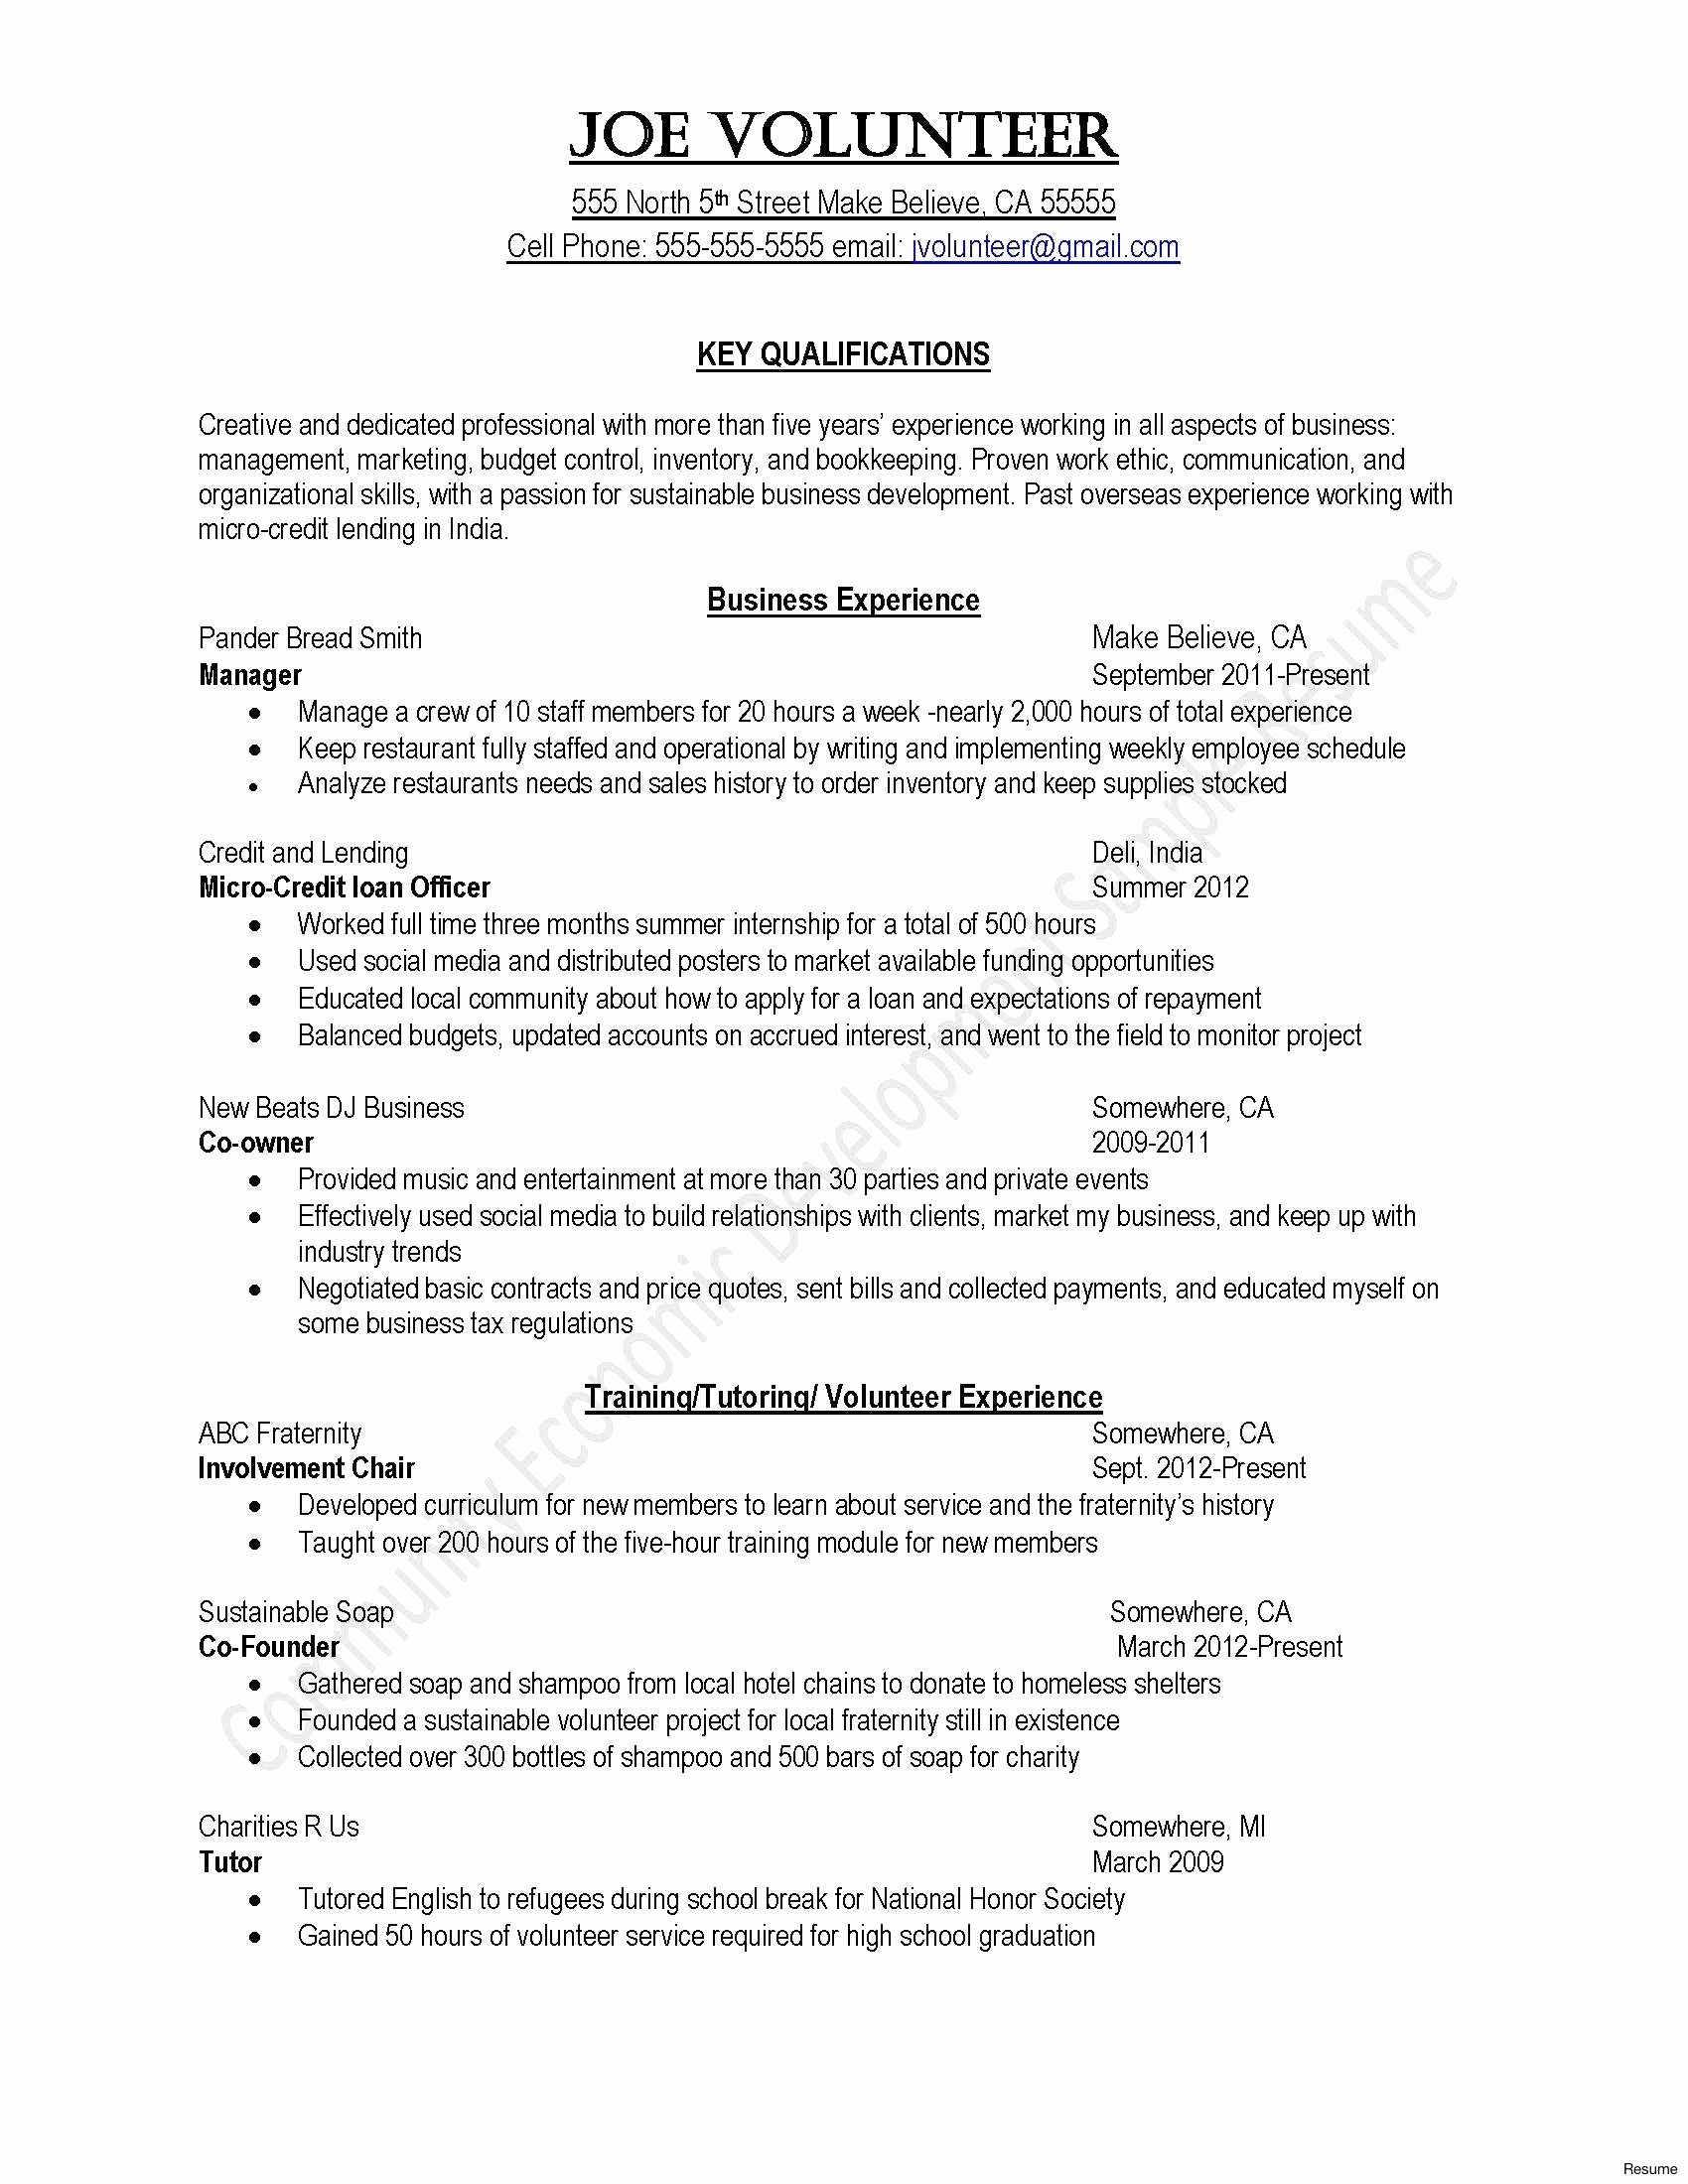 Grant Writer Resume - Technical Writer Resume Lovely College Resume Example Writers Resume